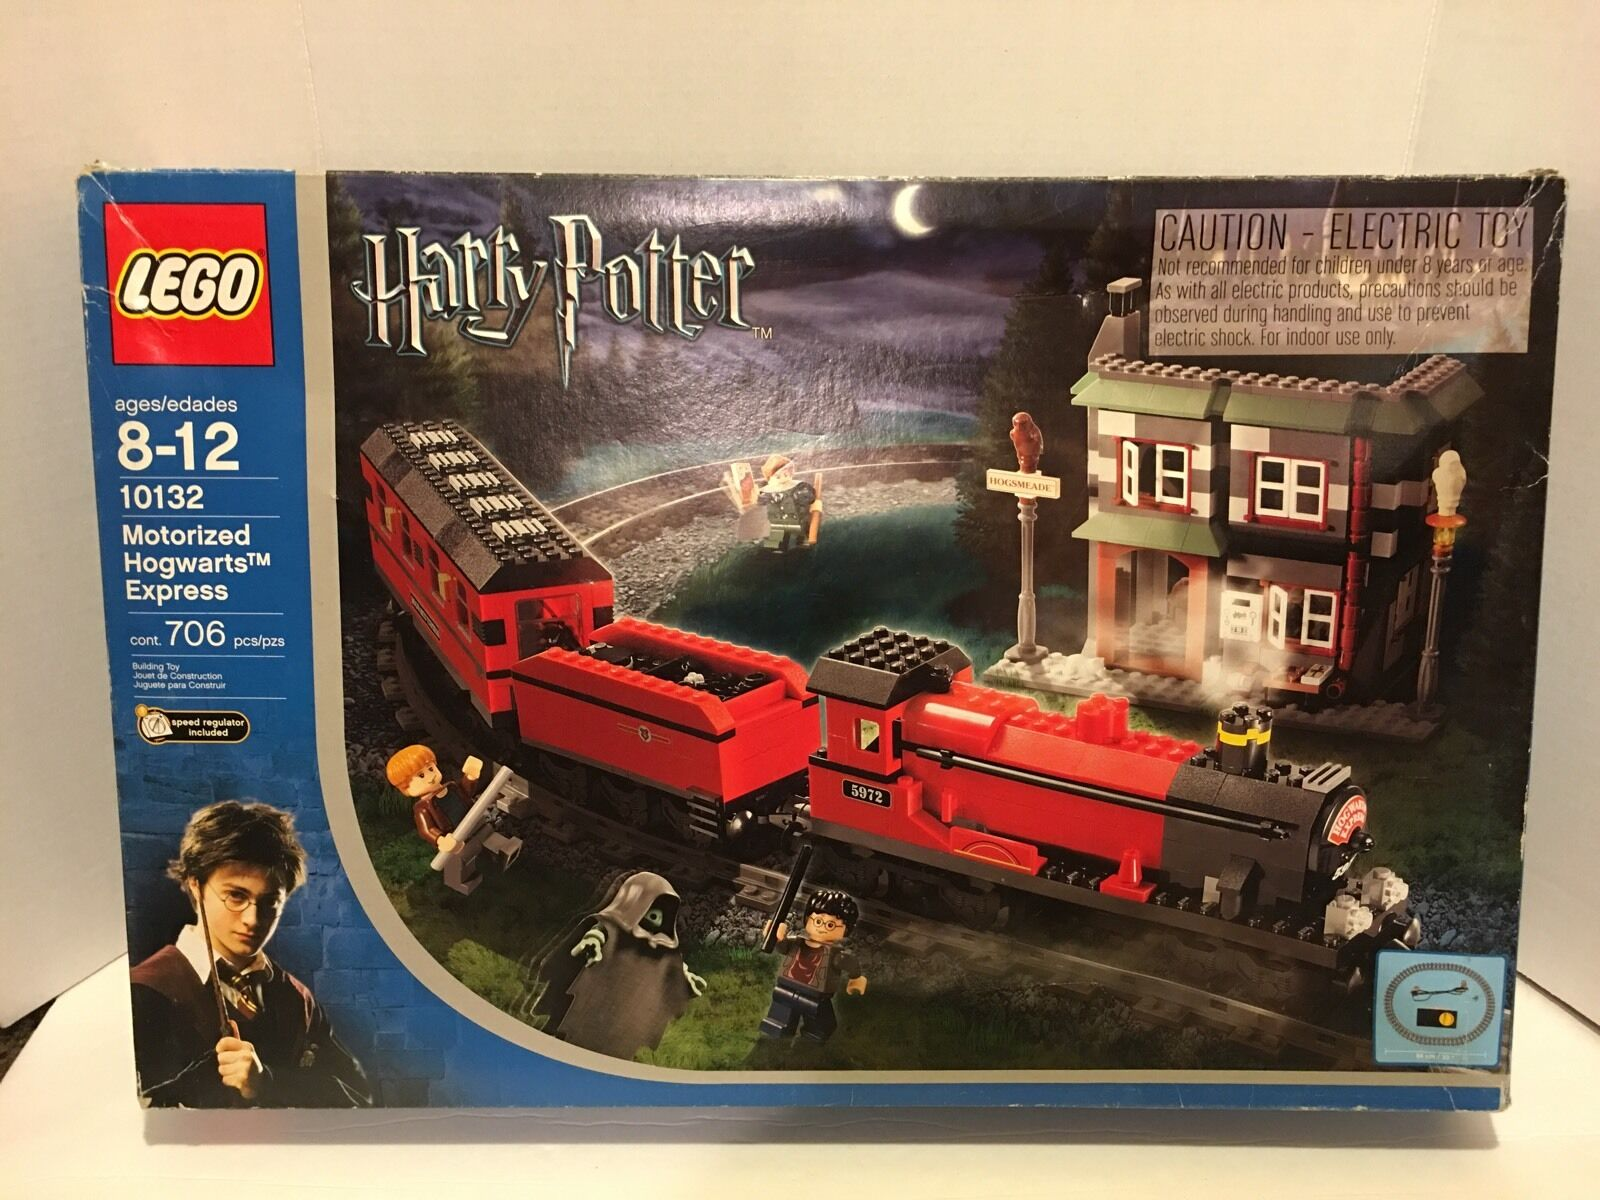 Rare Lego 10132 Harry Potter Motorized Hogwarts Express Express Express NEW in open Box a0c0e5